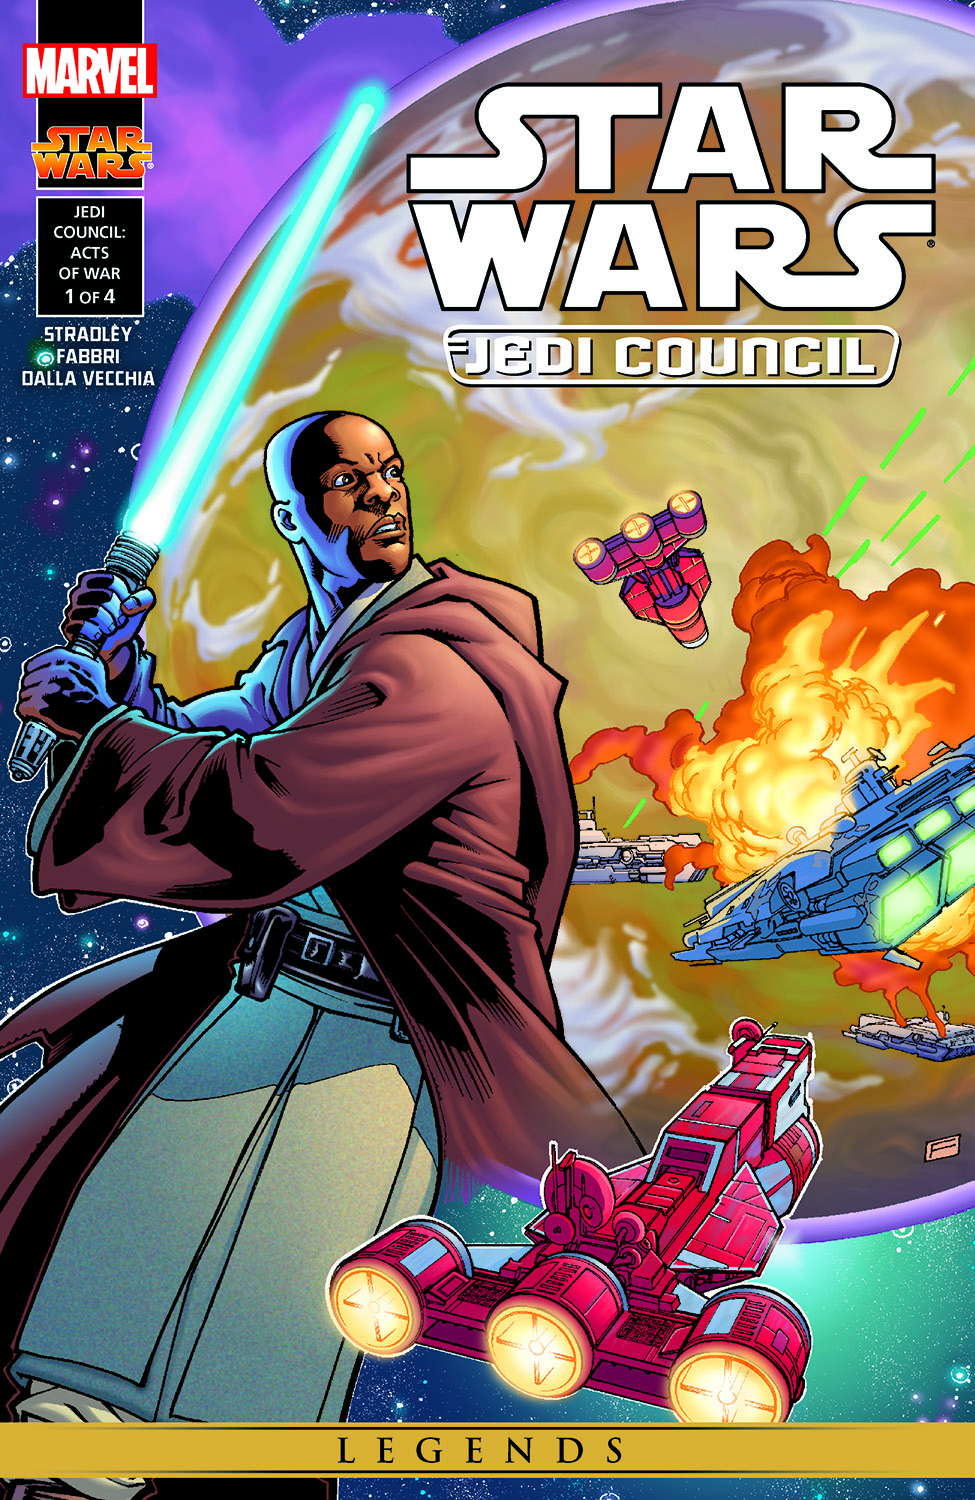 Star Wars: Jedi Council - Acts Of War (2000) #1